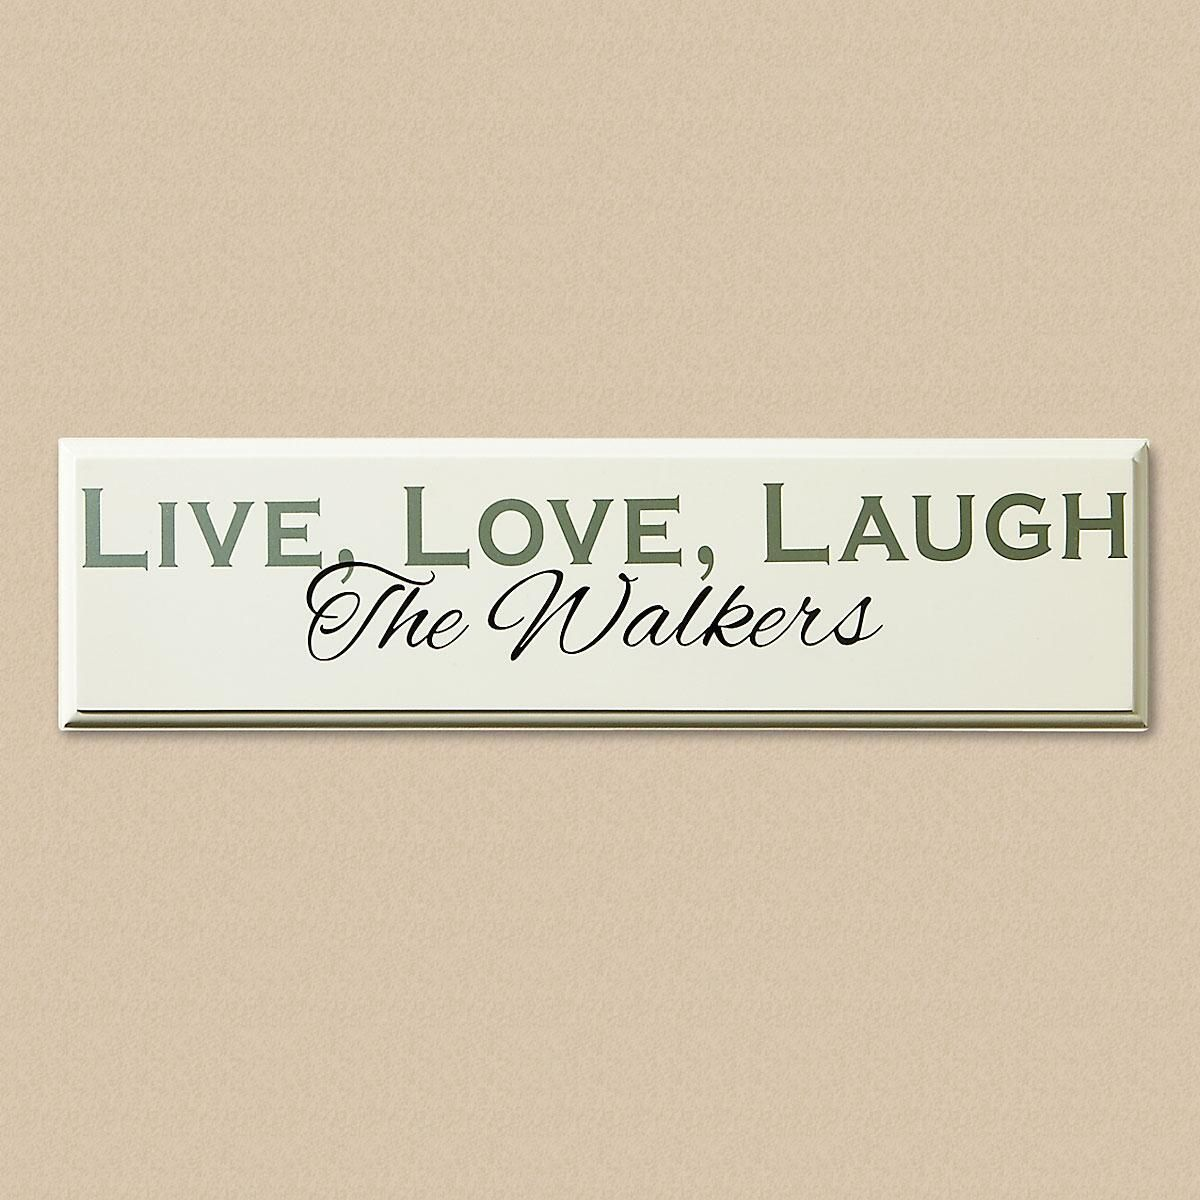 Live, Love, Laugh Personalized Wooden Plaque